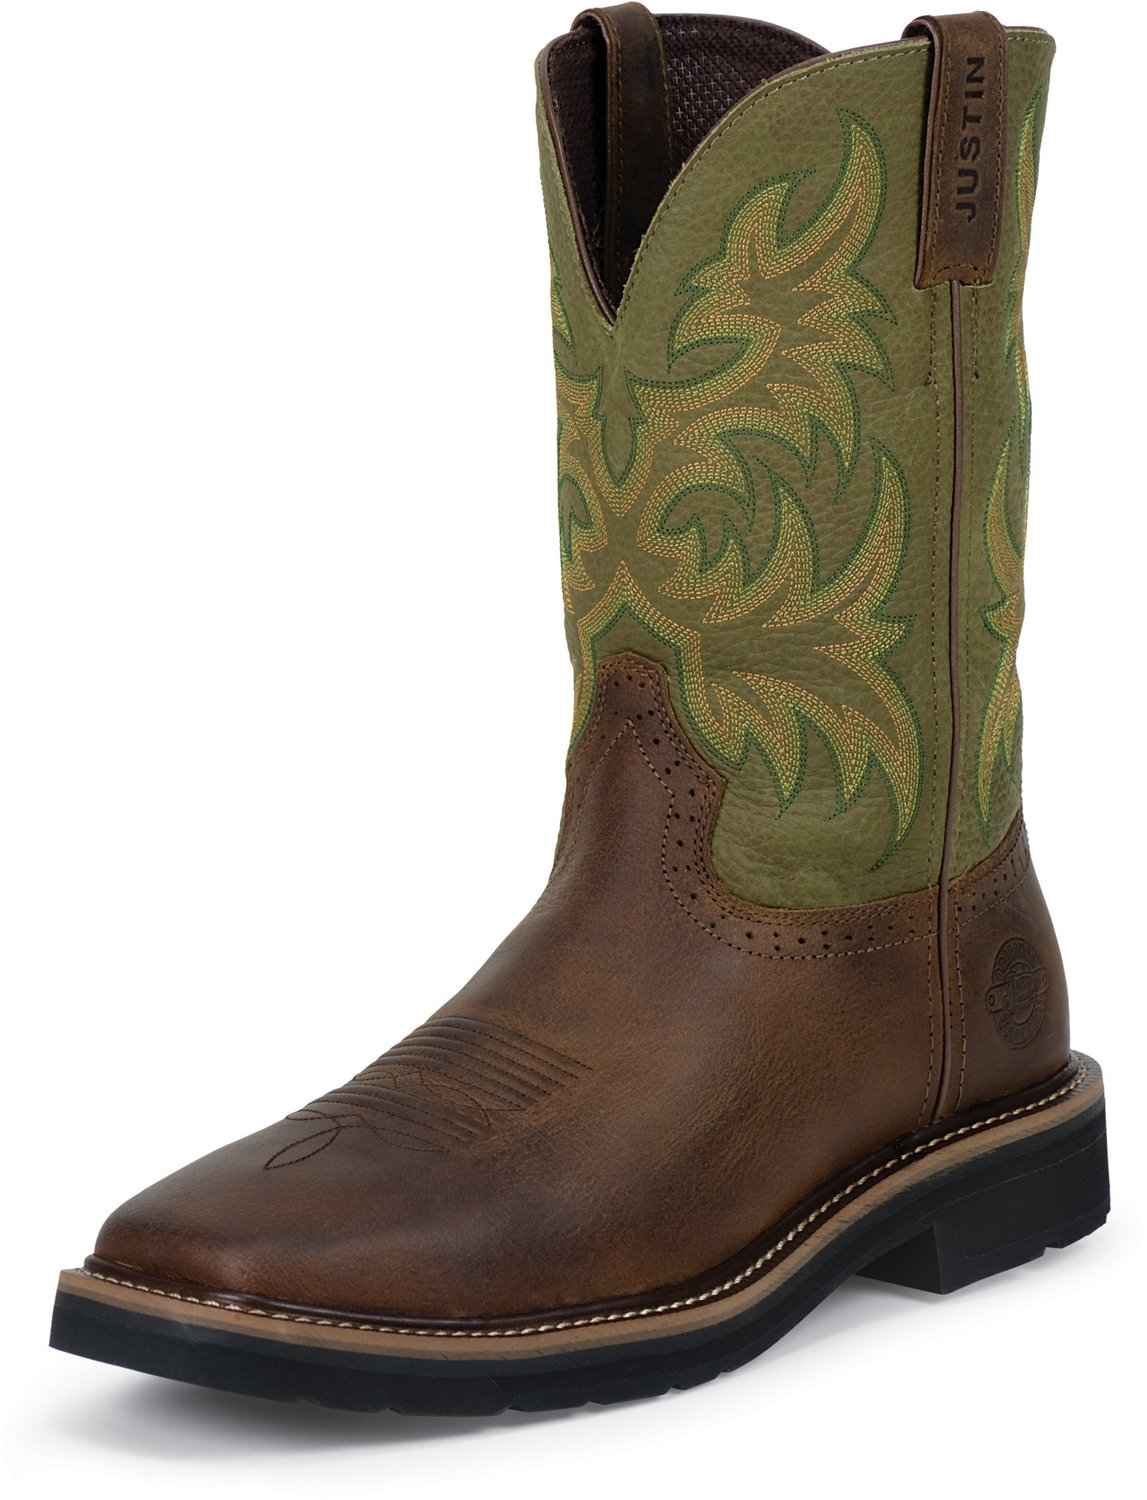 6c1264f307fd9c Display product reviews for Justin Men s Waxy Cowhide Western Work Boots